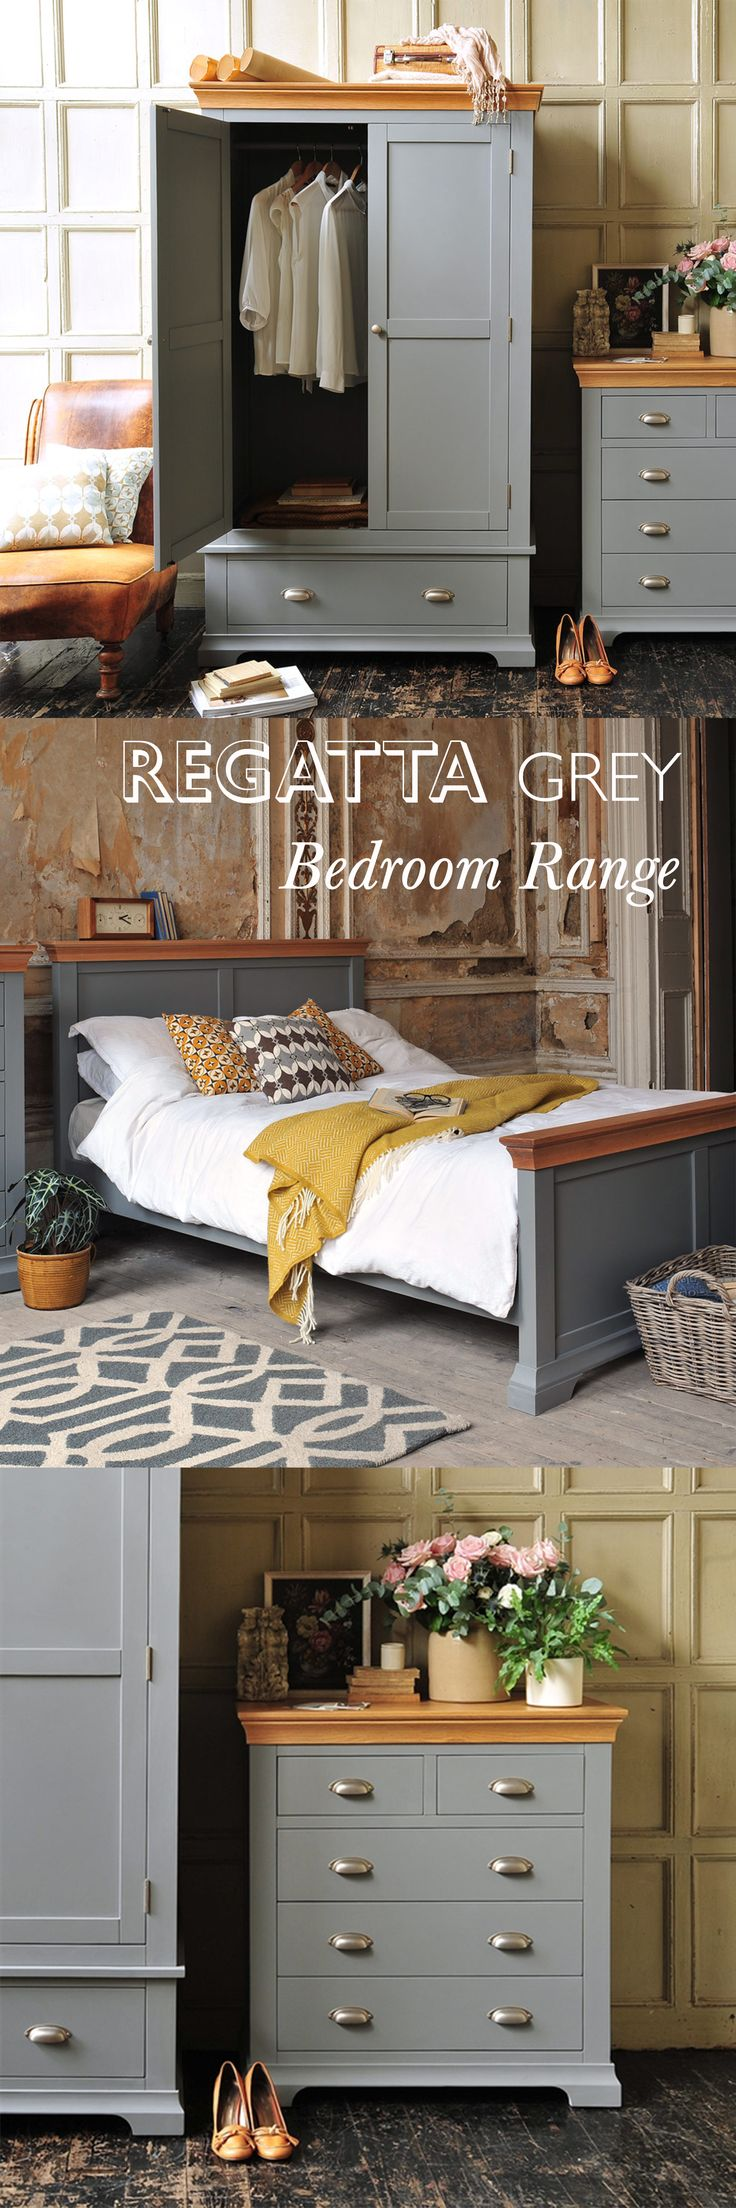 The Regatta Grey Bedrooom Range from The Cotswold Company featuring  beautifully grey painted bedroom furniture including. Best 25  Painted bedroom furniture ideas on Pinterest   Refinished